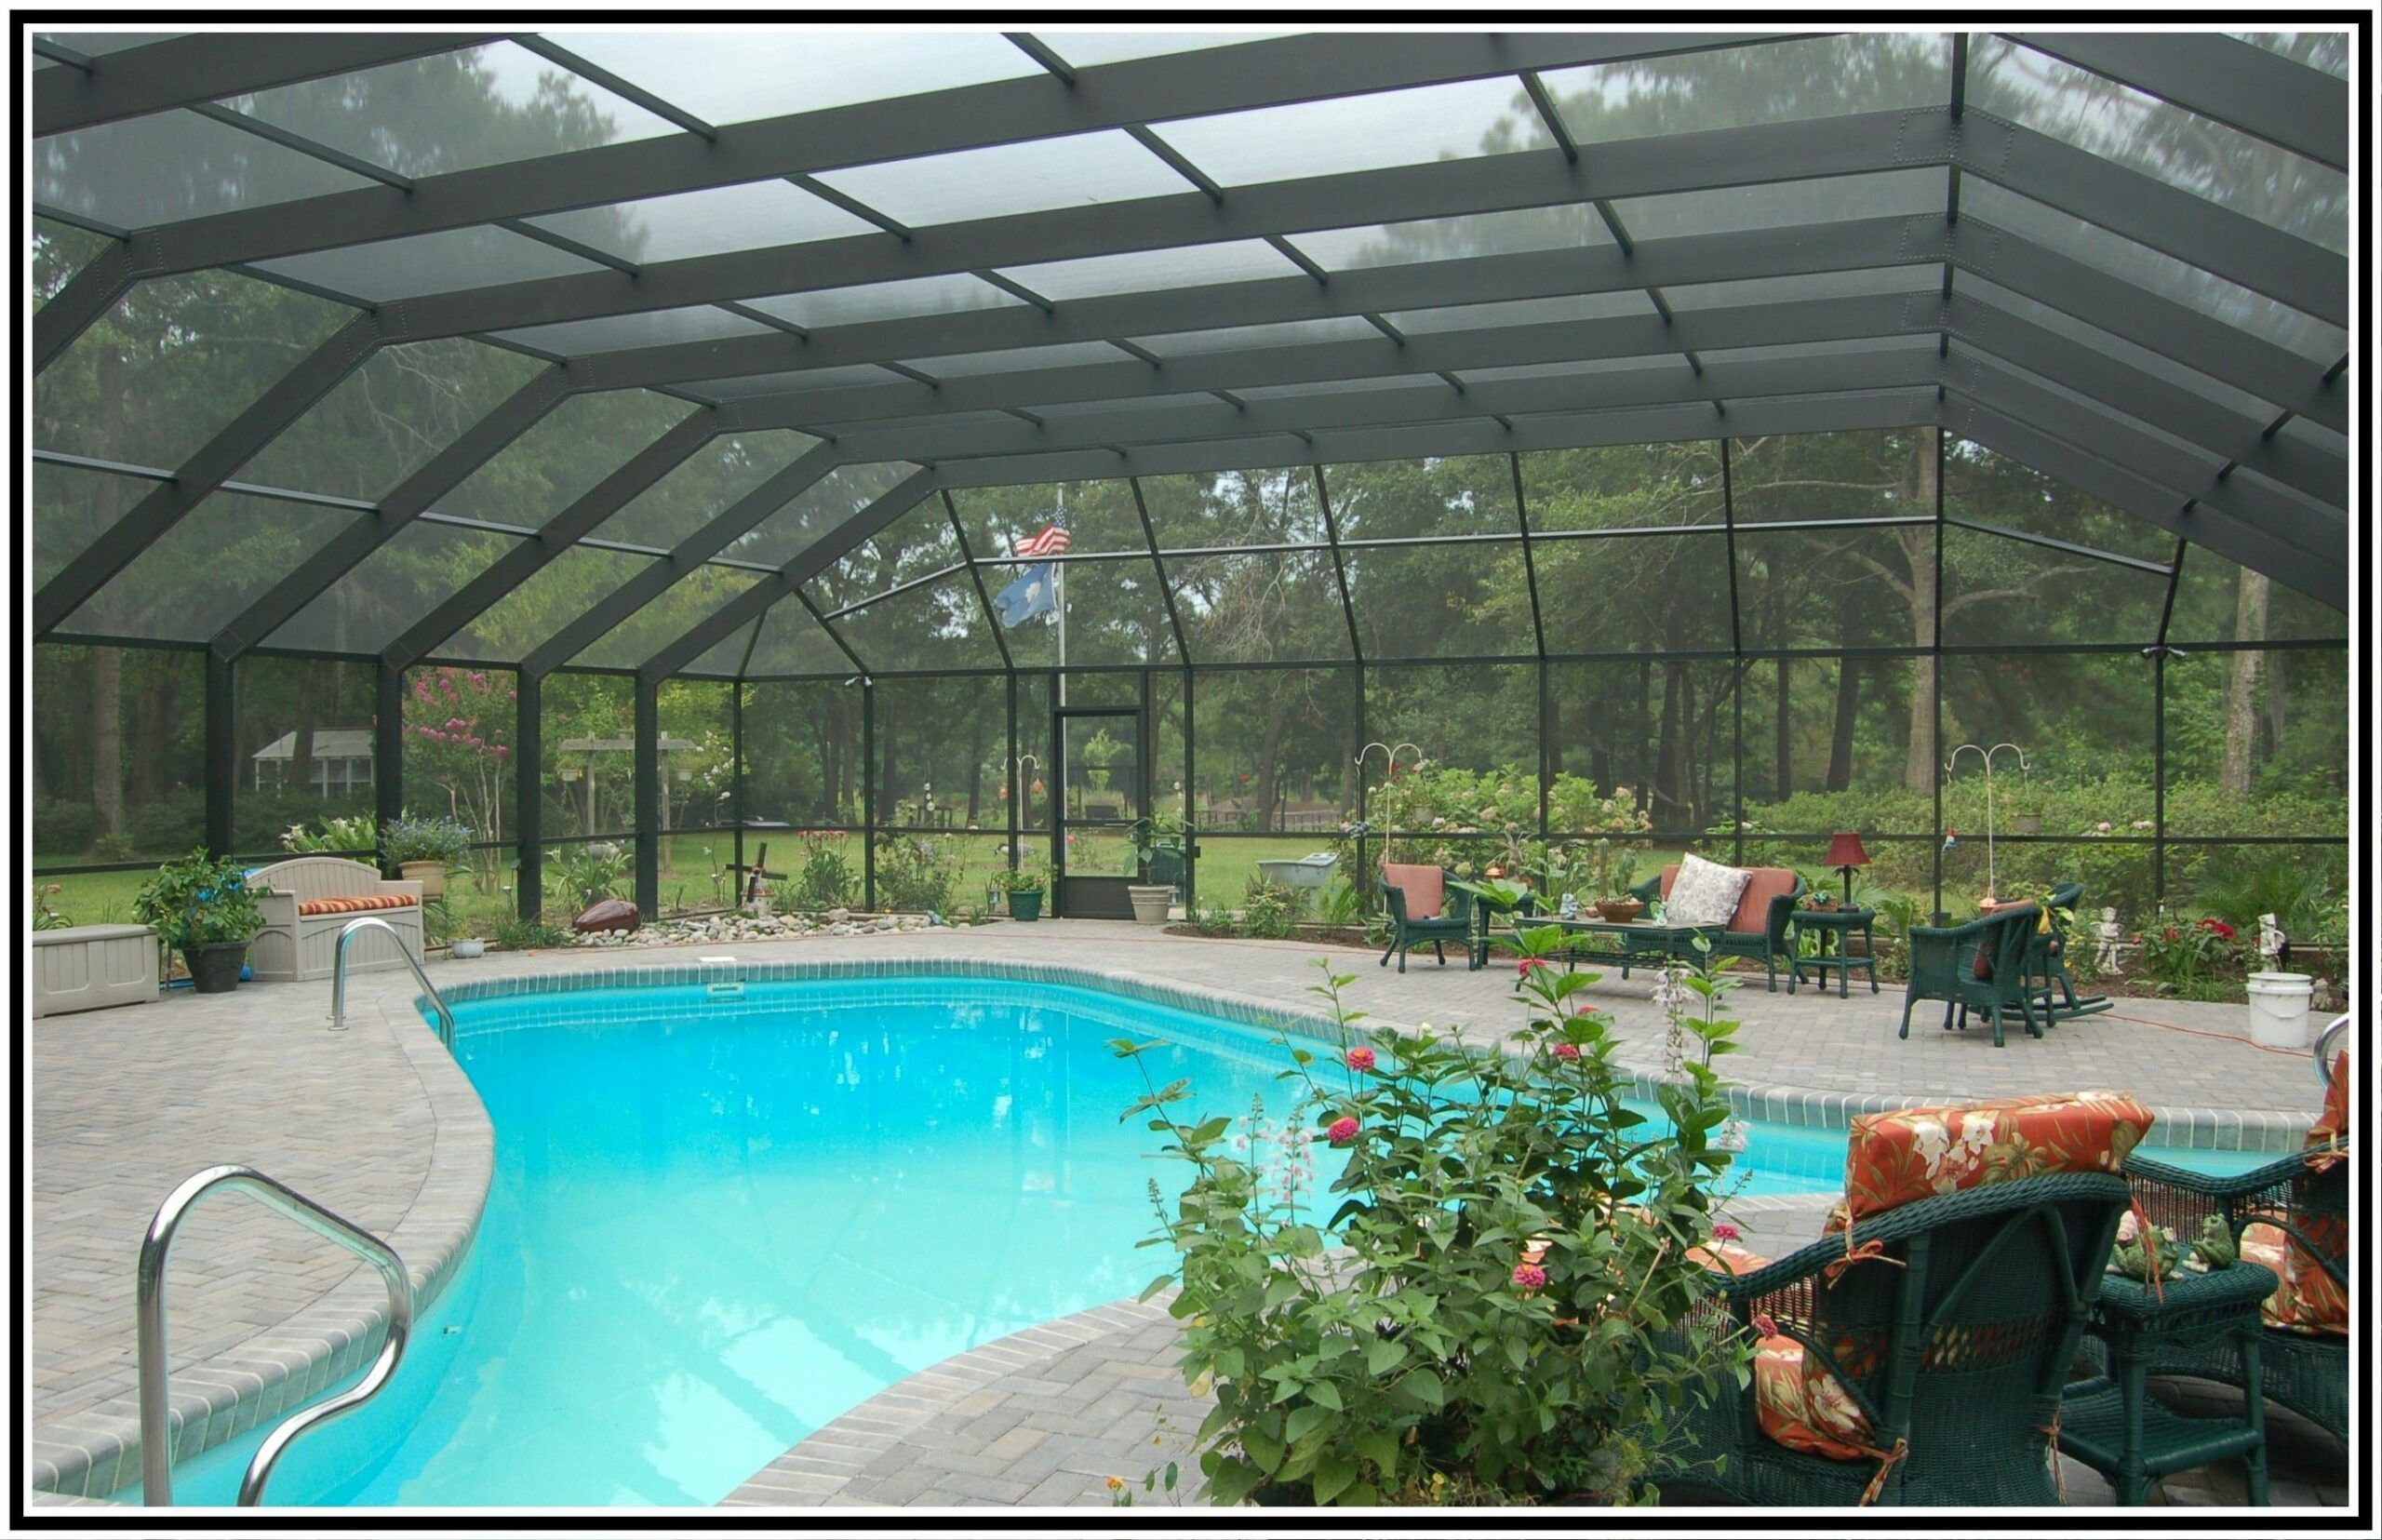 pool enclosure designs | pool enclosures and screen rooms are an ..